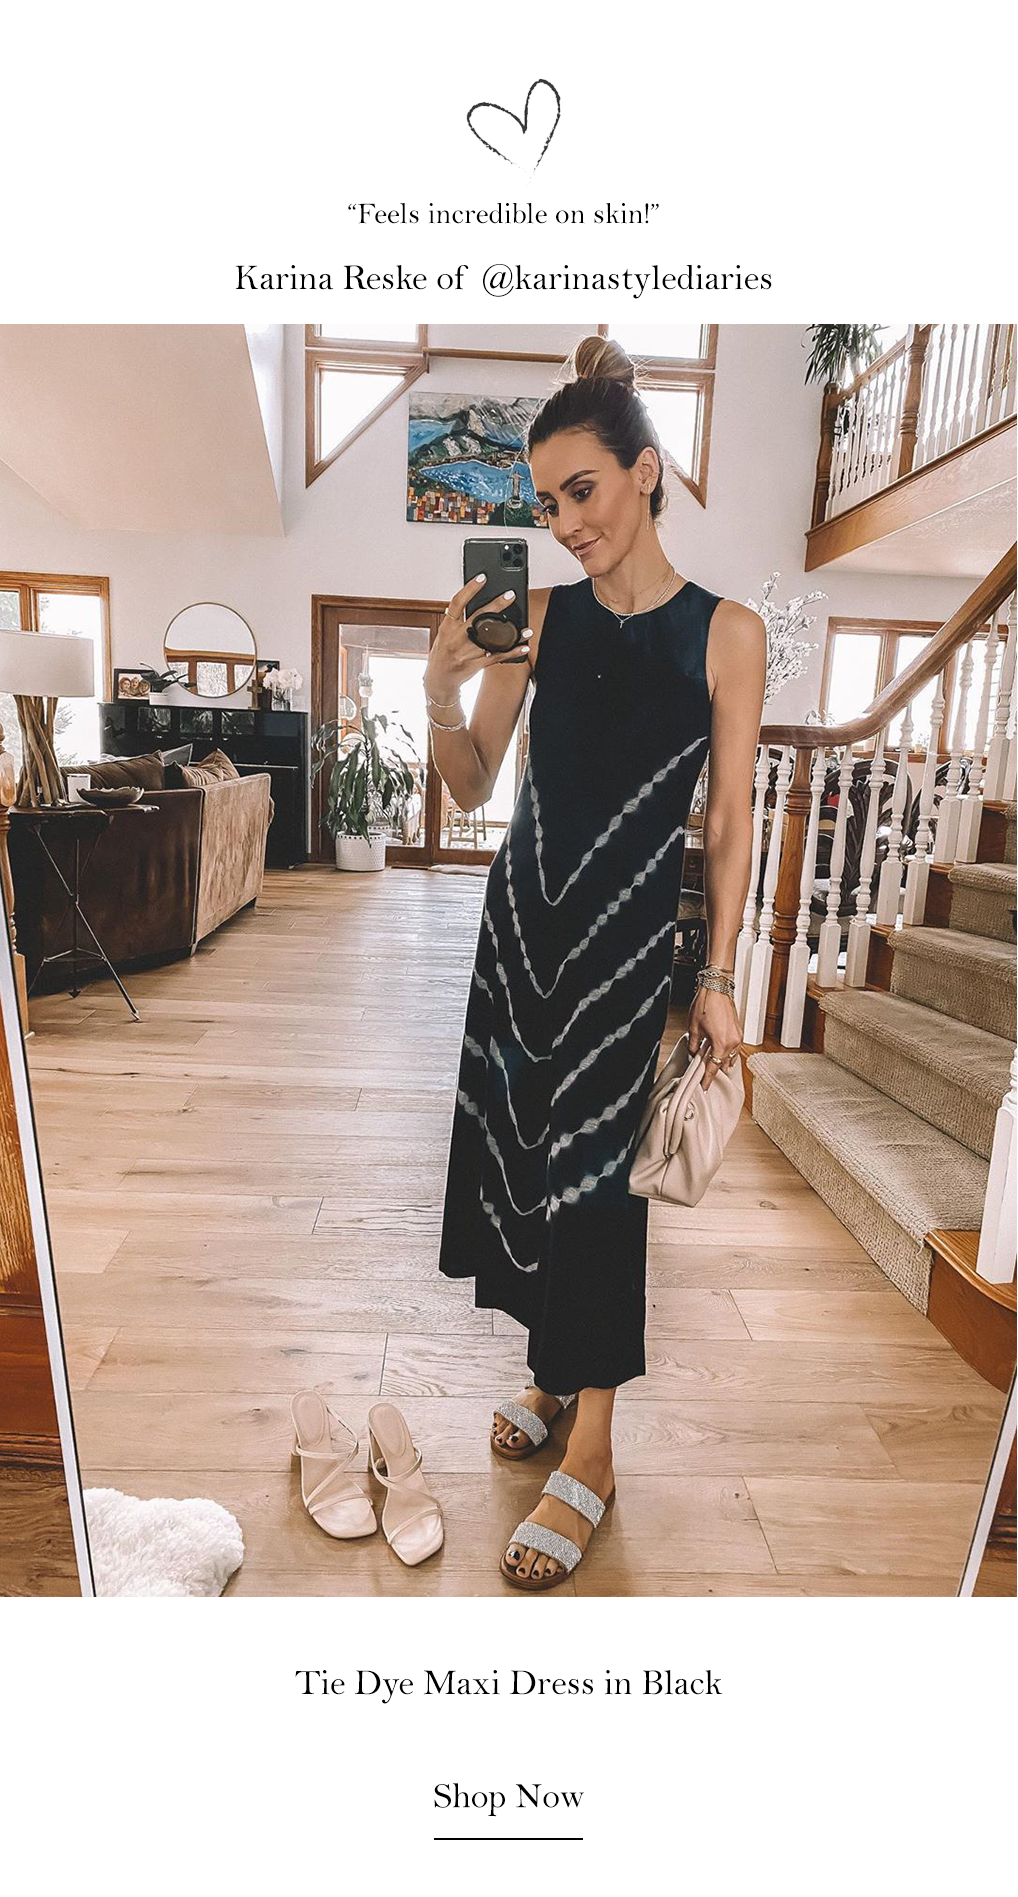 https://www.autumncashmere.com/collections/new-arrivals-shop-all/products/tie-dye-maxi-dress-in-black